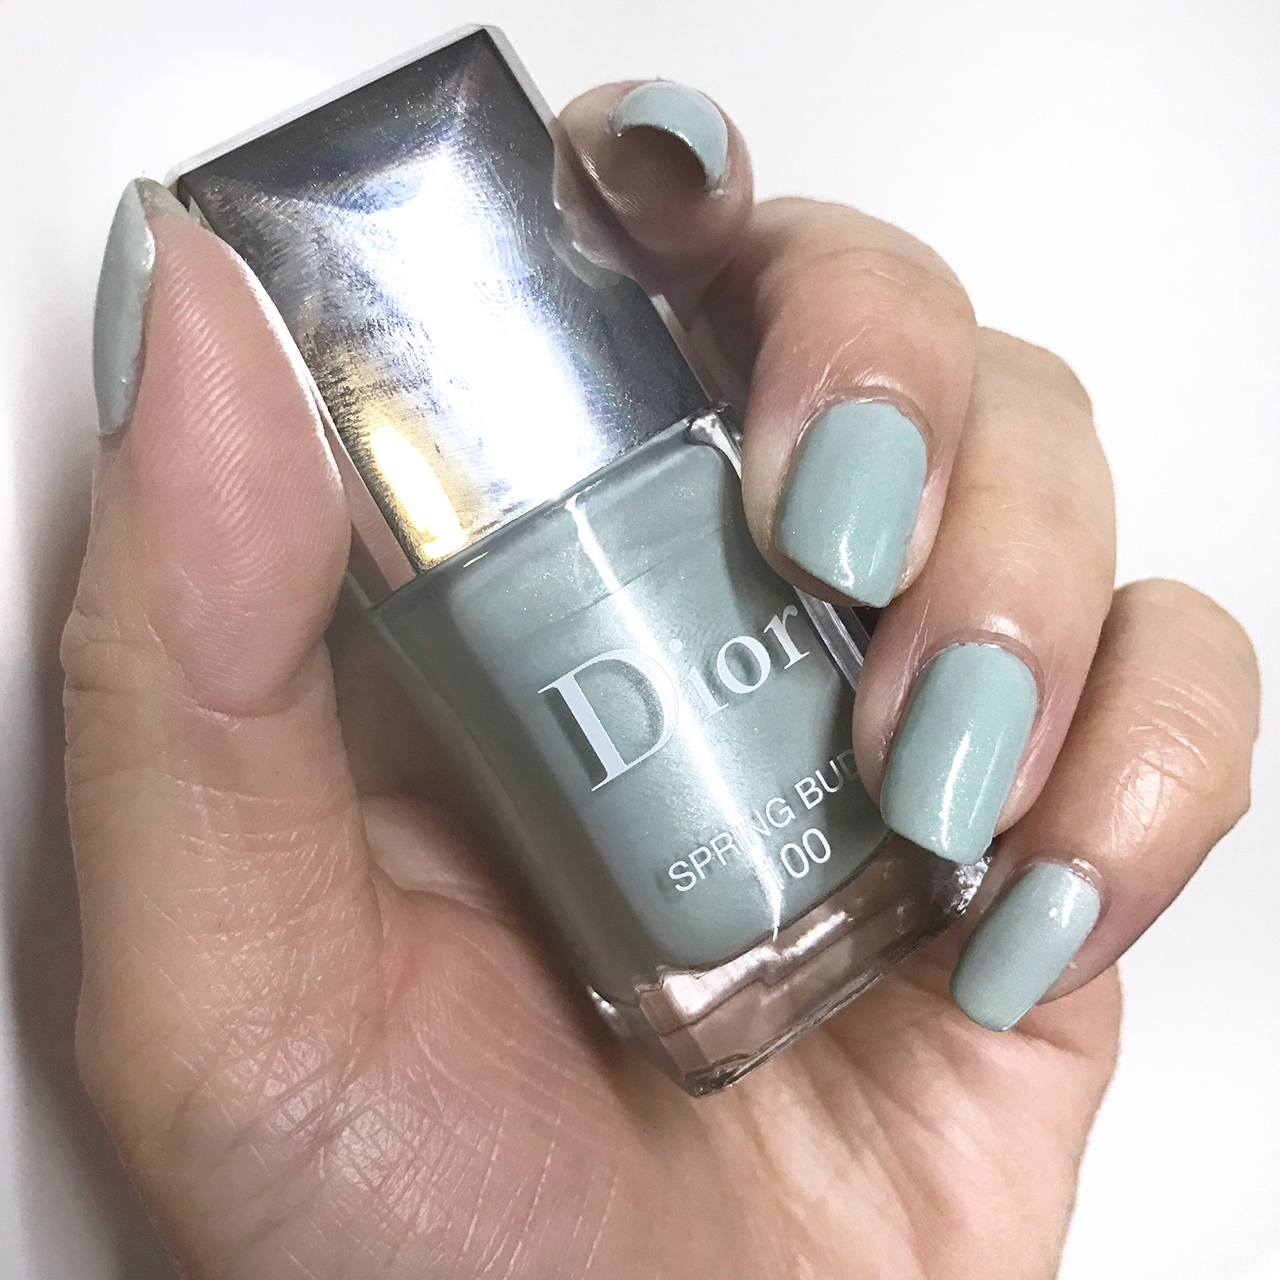 Dior Le Vernis Spring Bud nail swatch